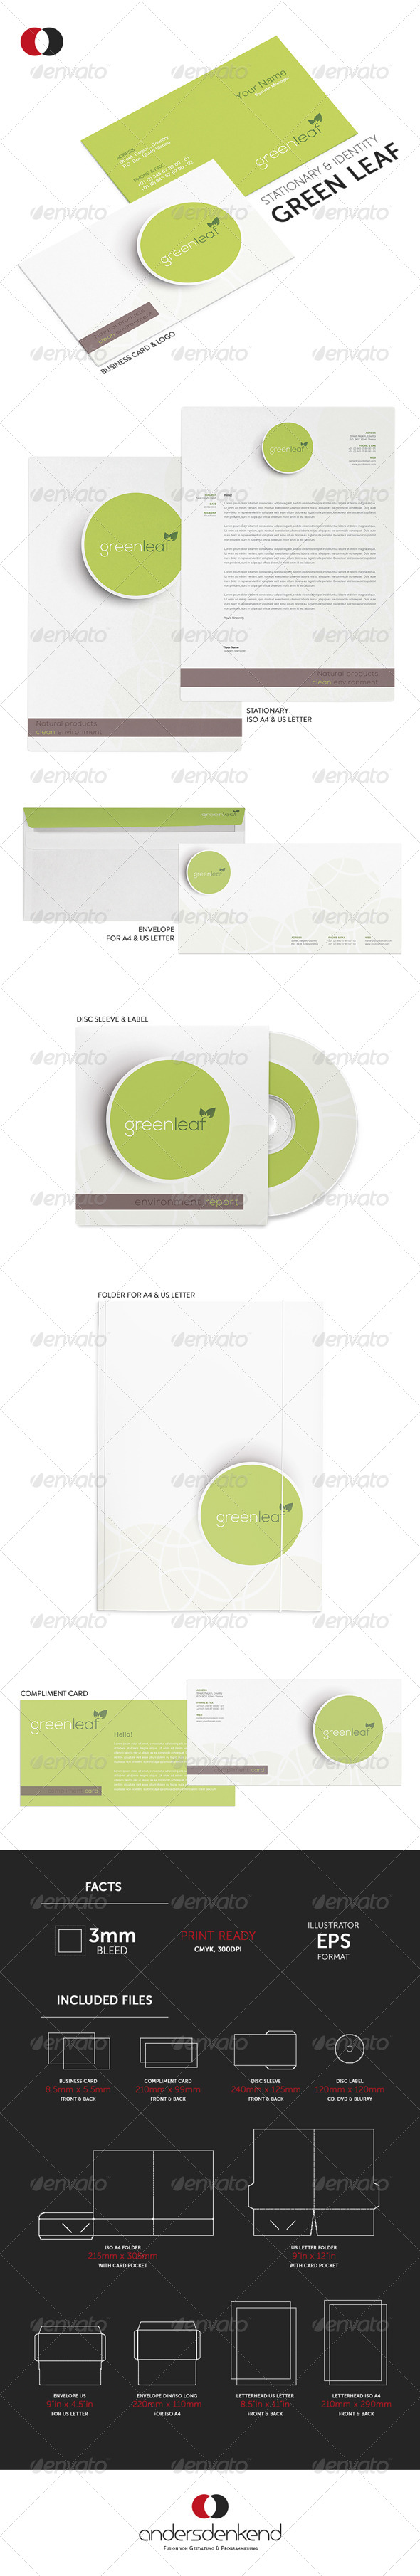 GraphicRiver Stationary & Identity Green Leaf 5877007